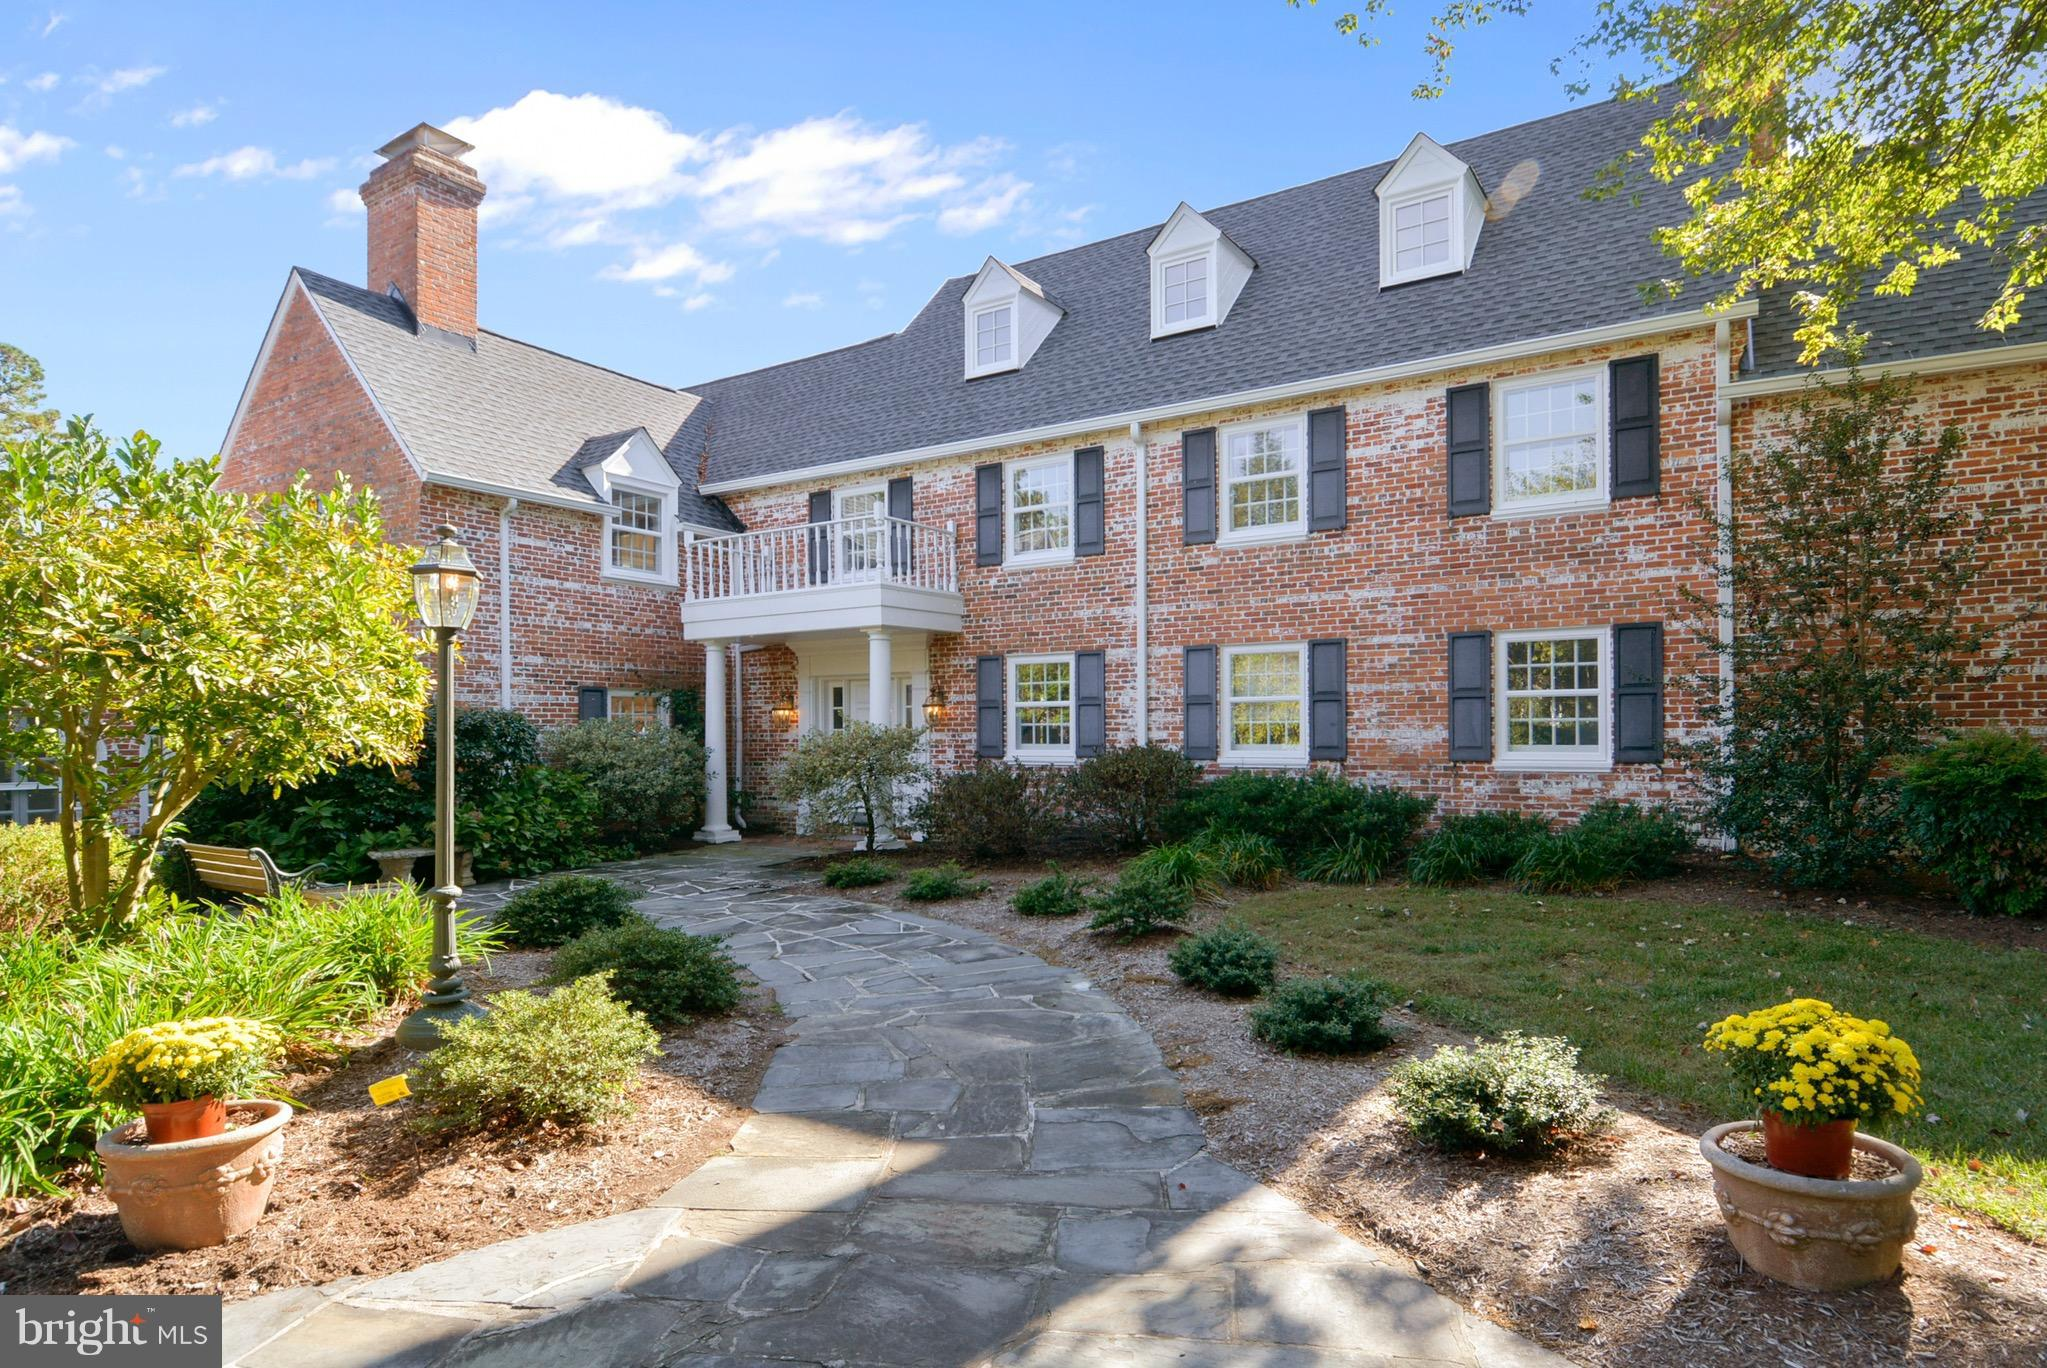 218 ALYNN WAY, QUEENSTOWN, MD 21658